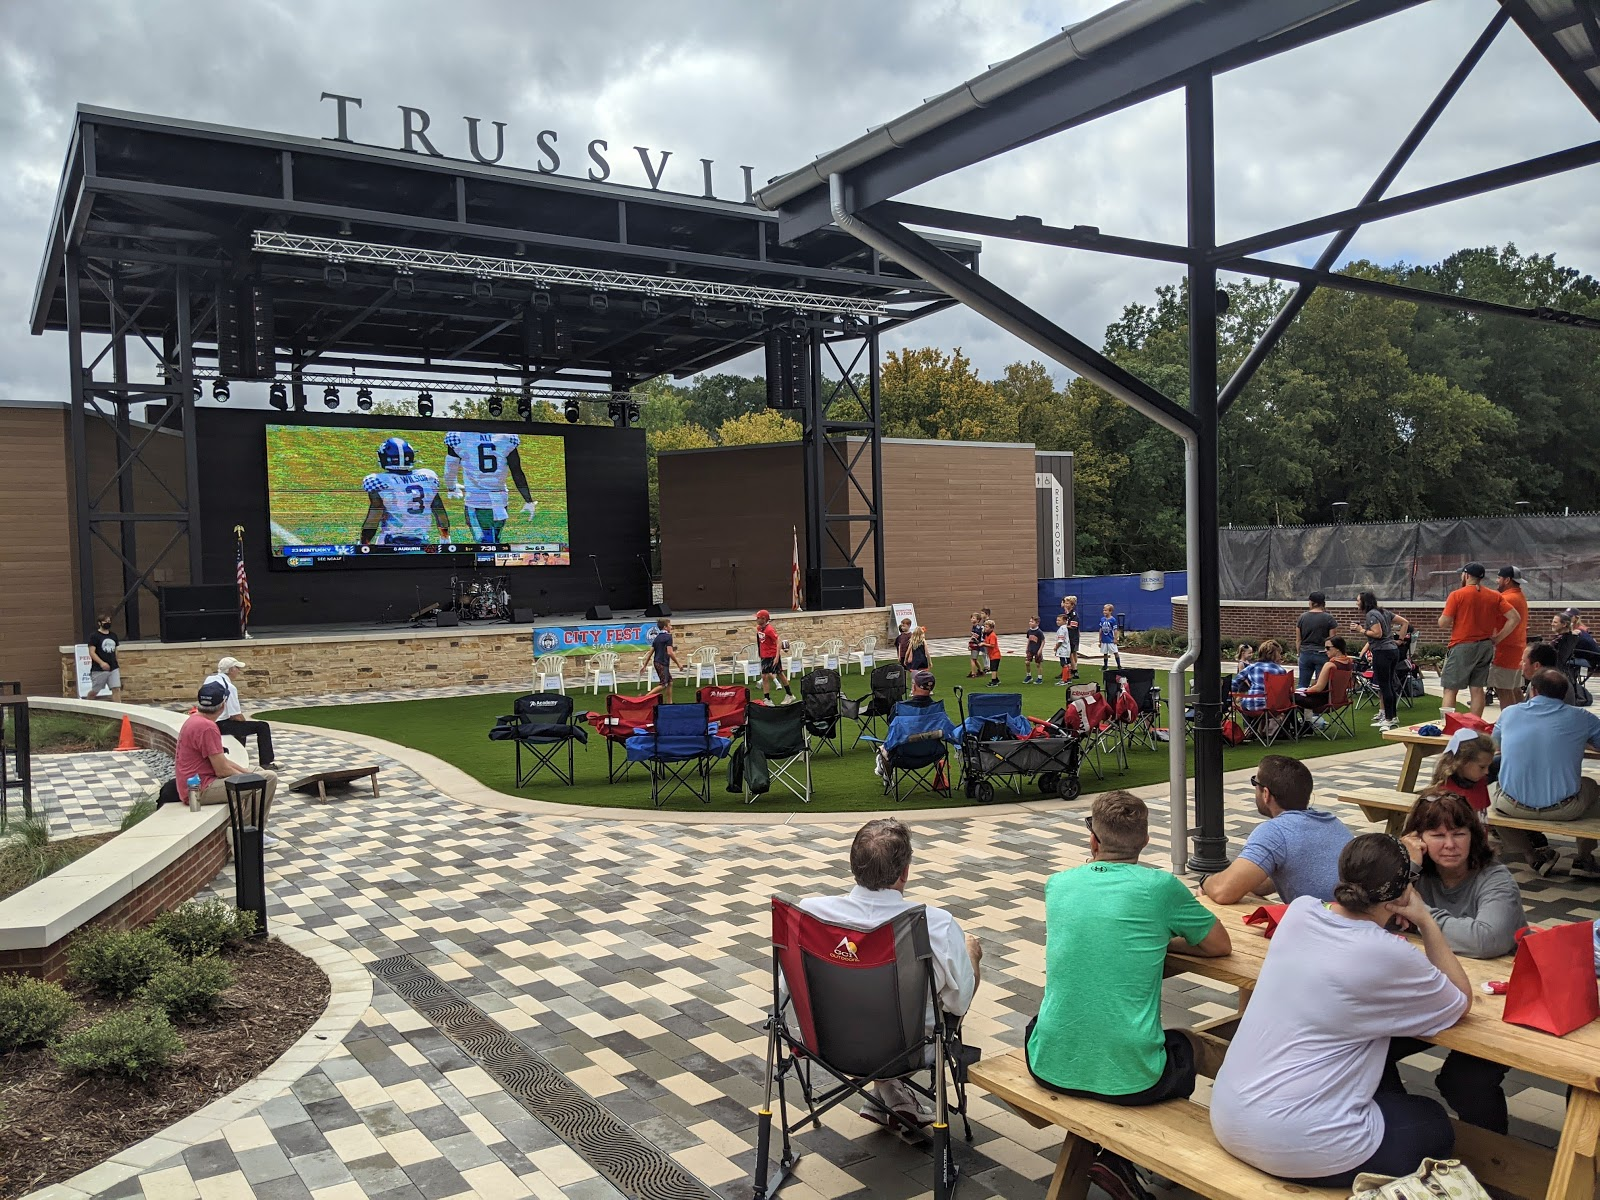 The Trussville pavilion welcomed the kick-off of SEC football, September 26, 2020.